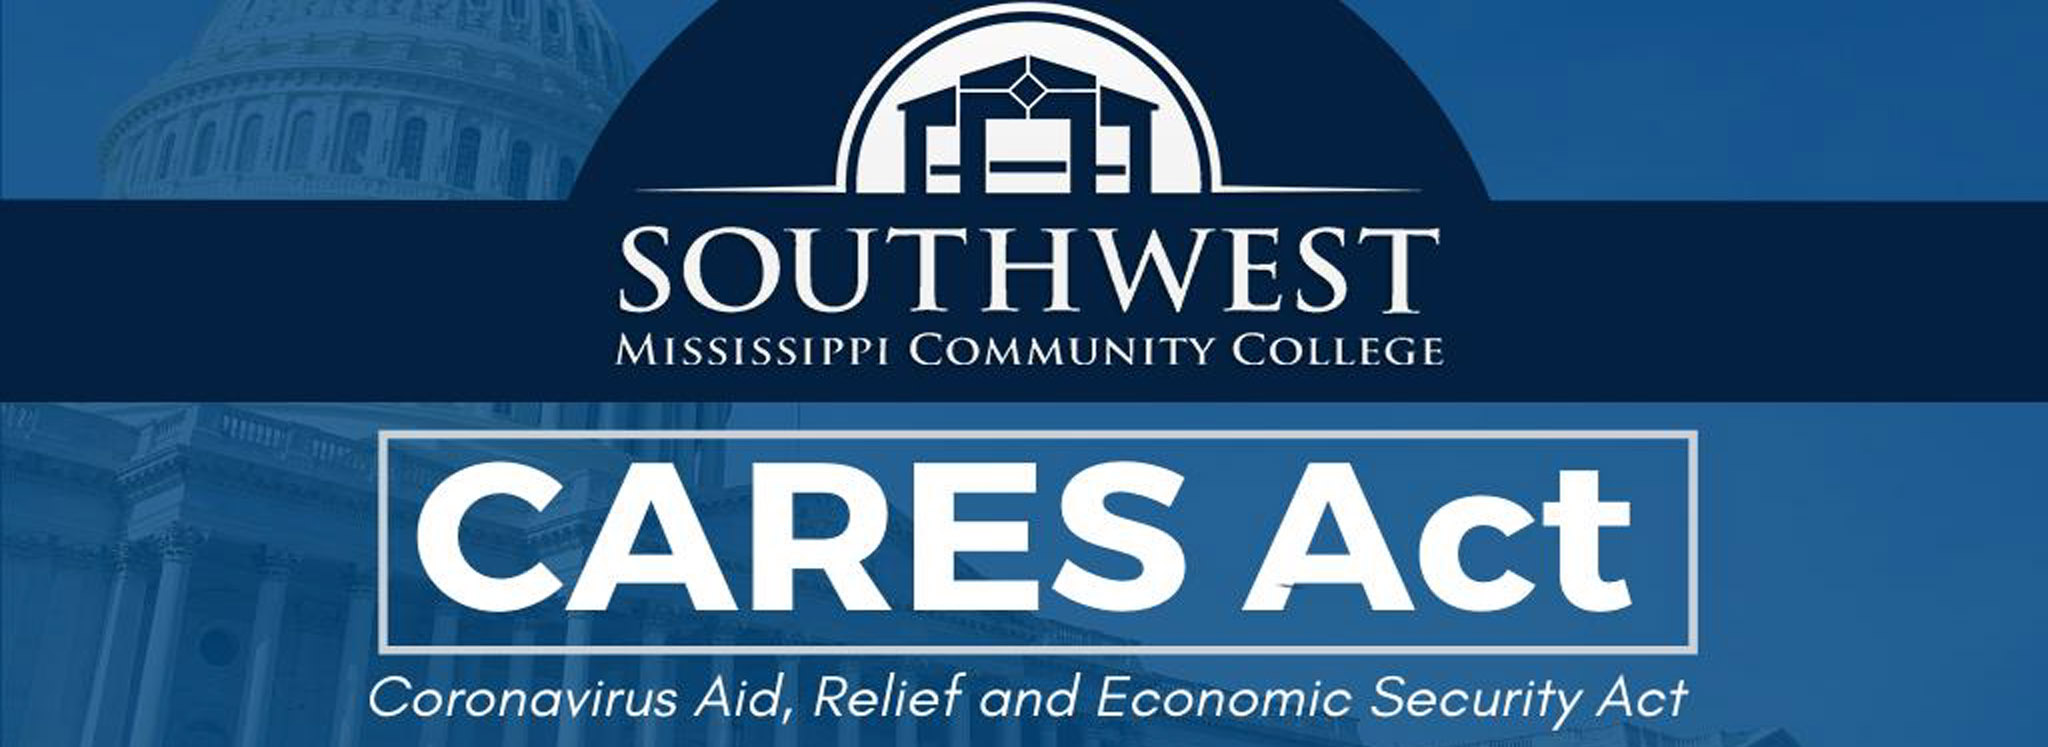 Information regarding CARES Act funds received by Southwest